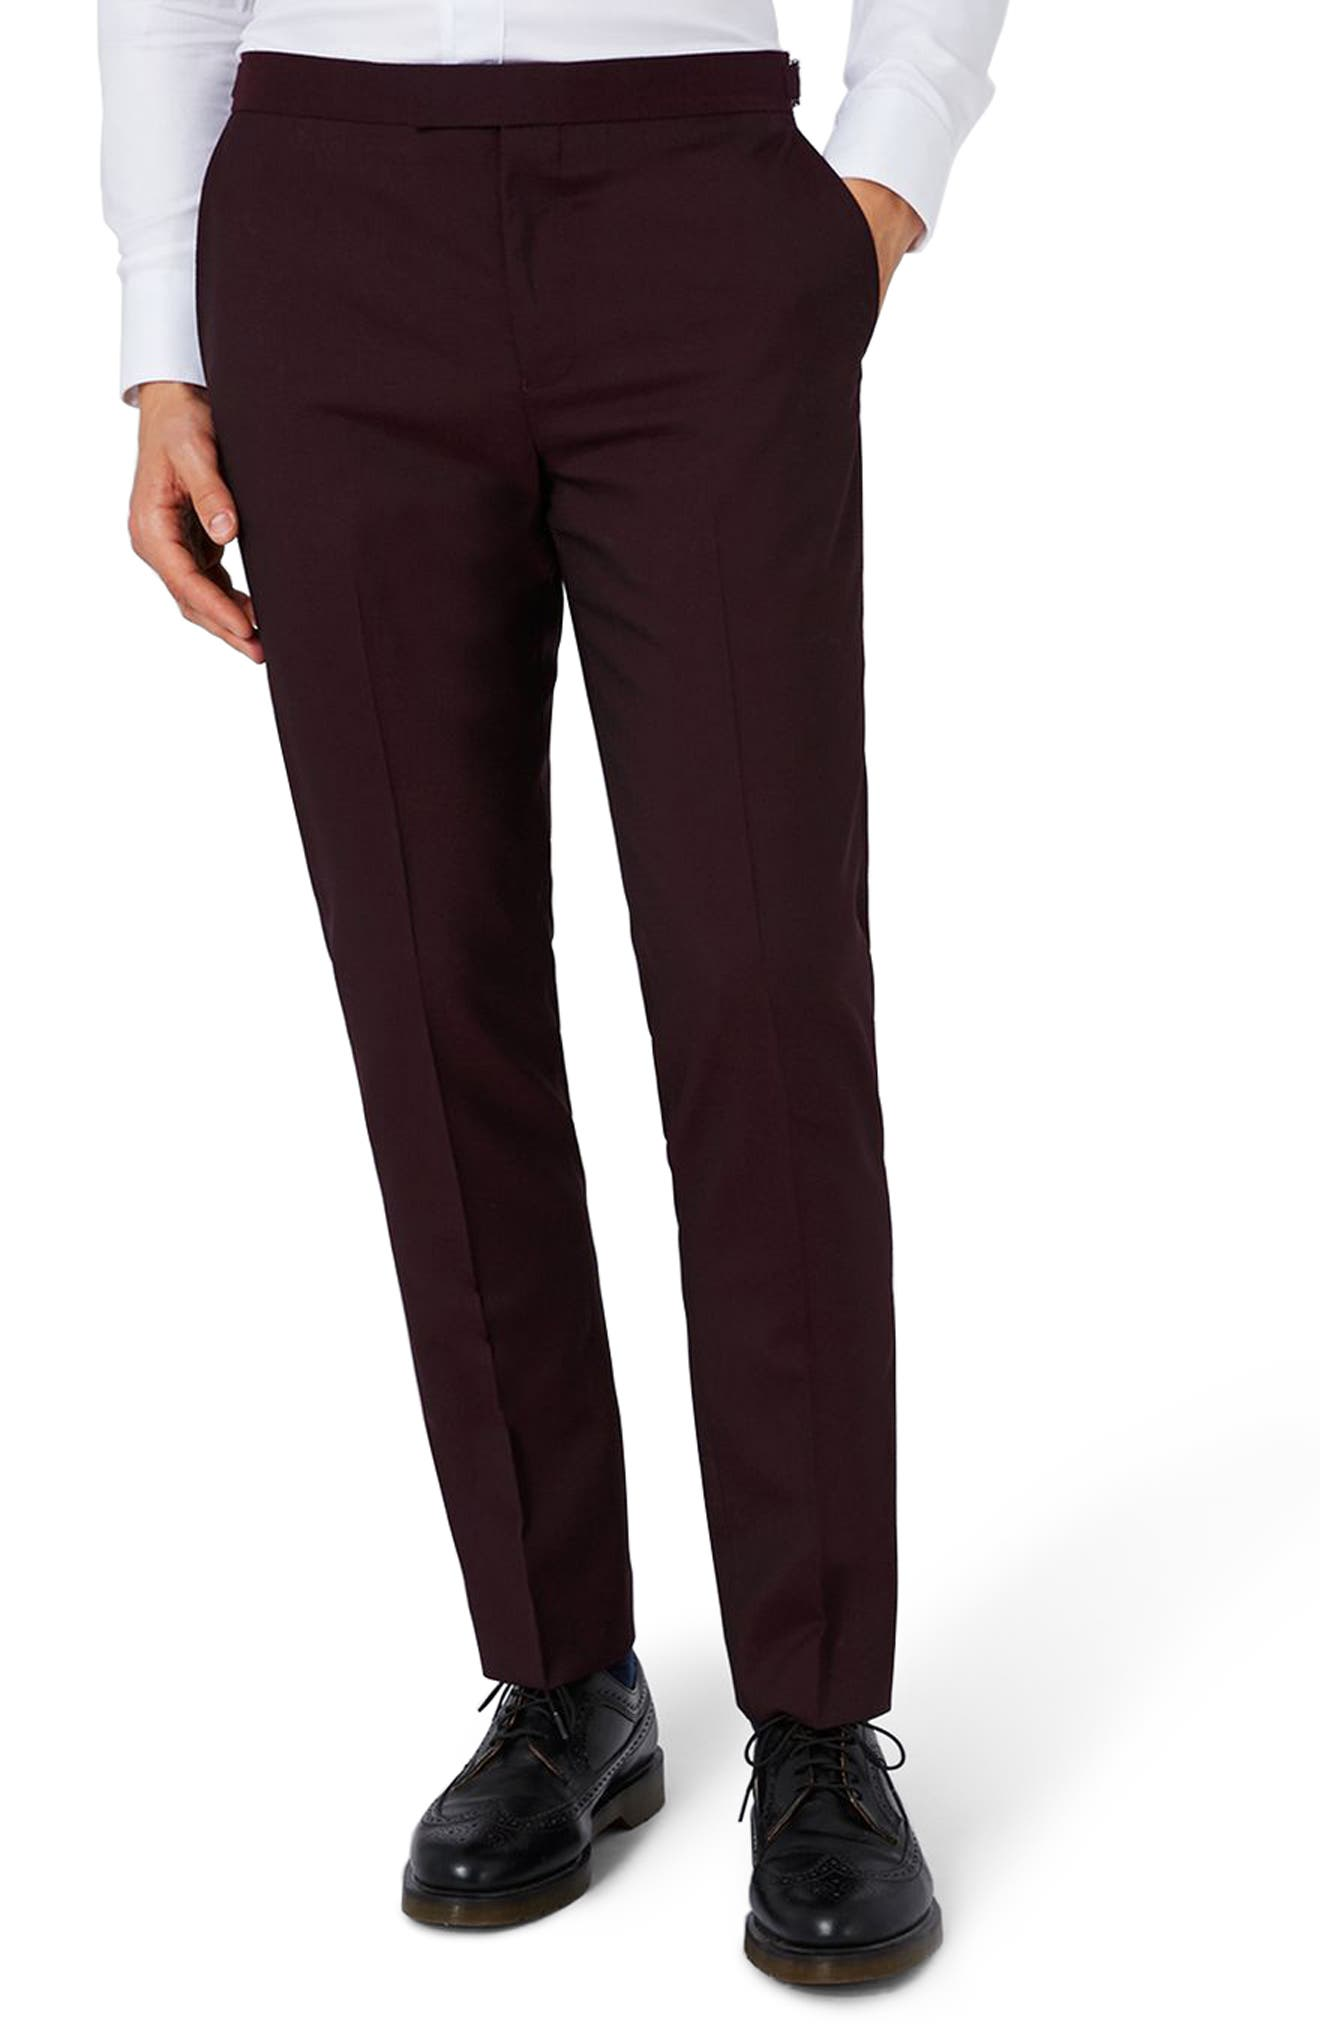 Charlie Casely-Hayford x Topman Skinny Fit Suit Trousers